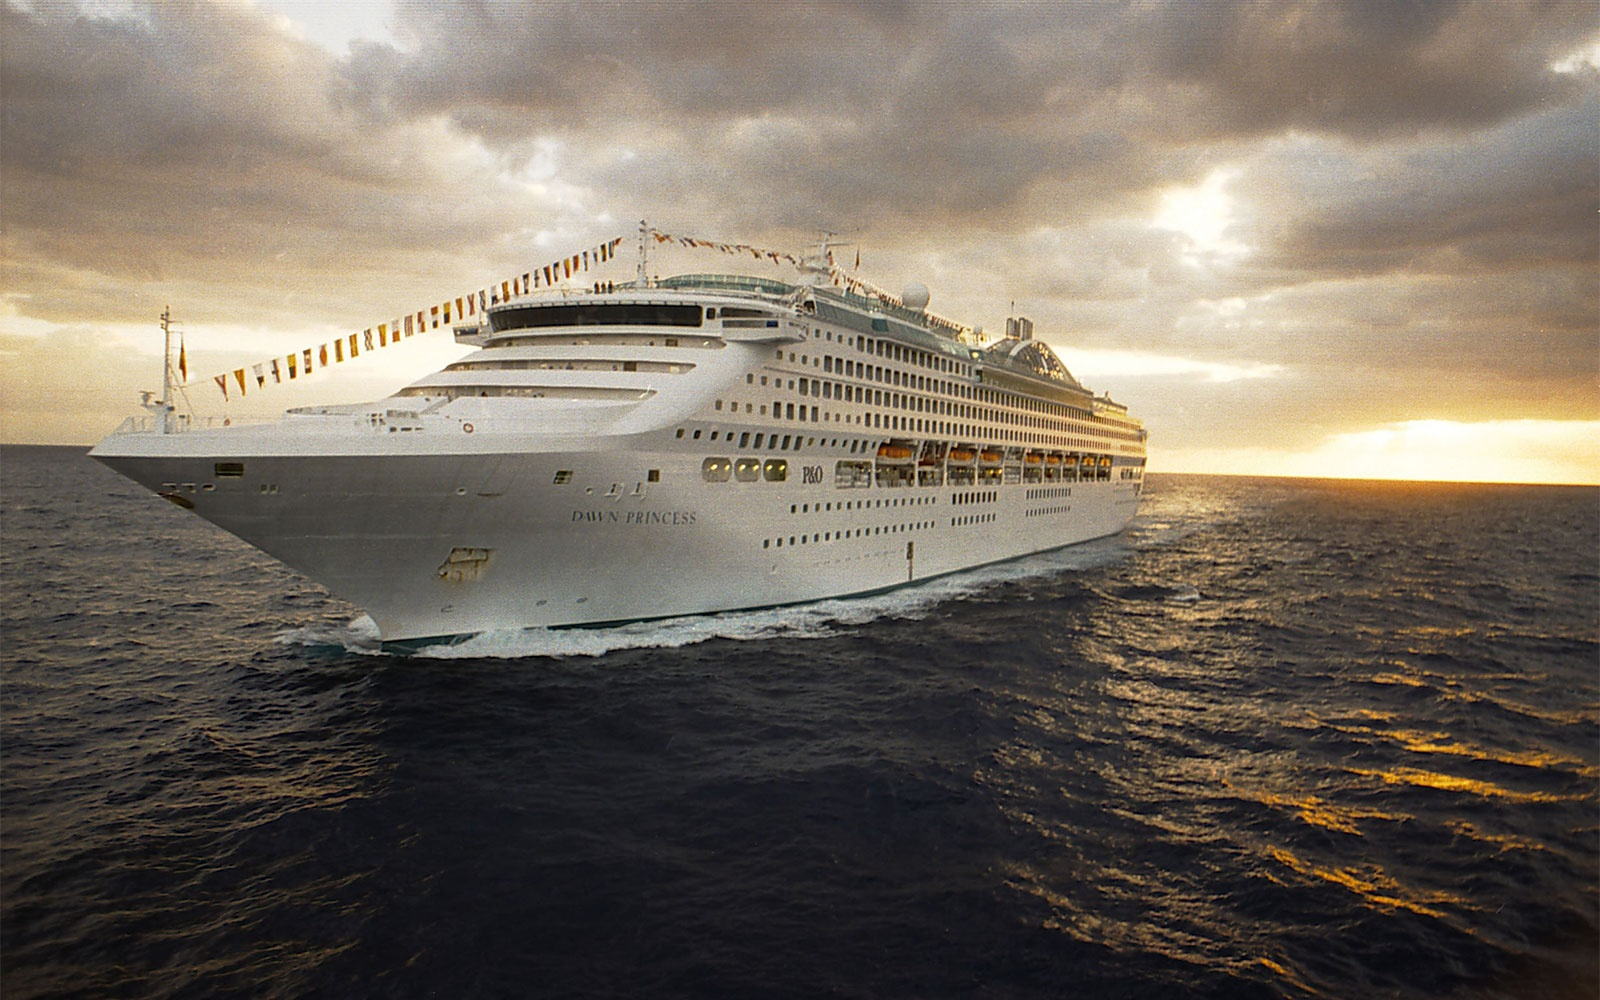 No. 6 Large-Ship Ocean Cruise Line: Princess Cruises